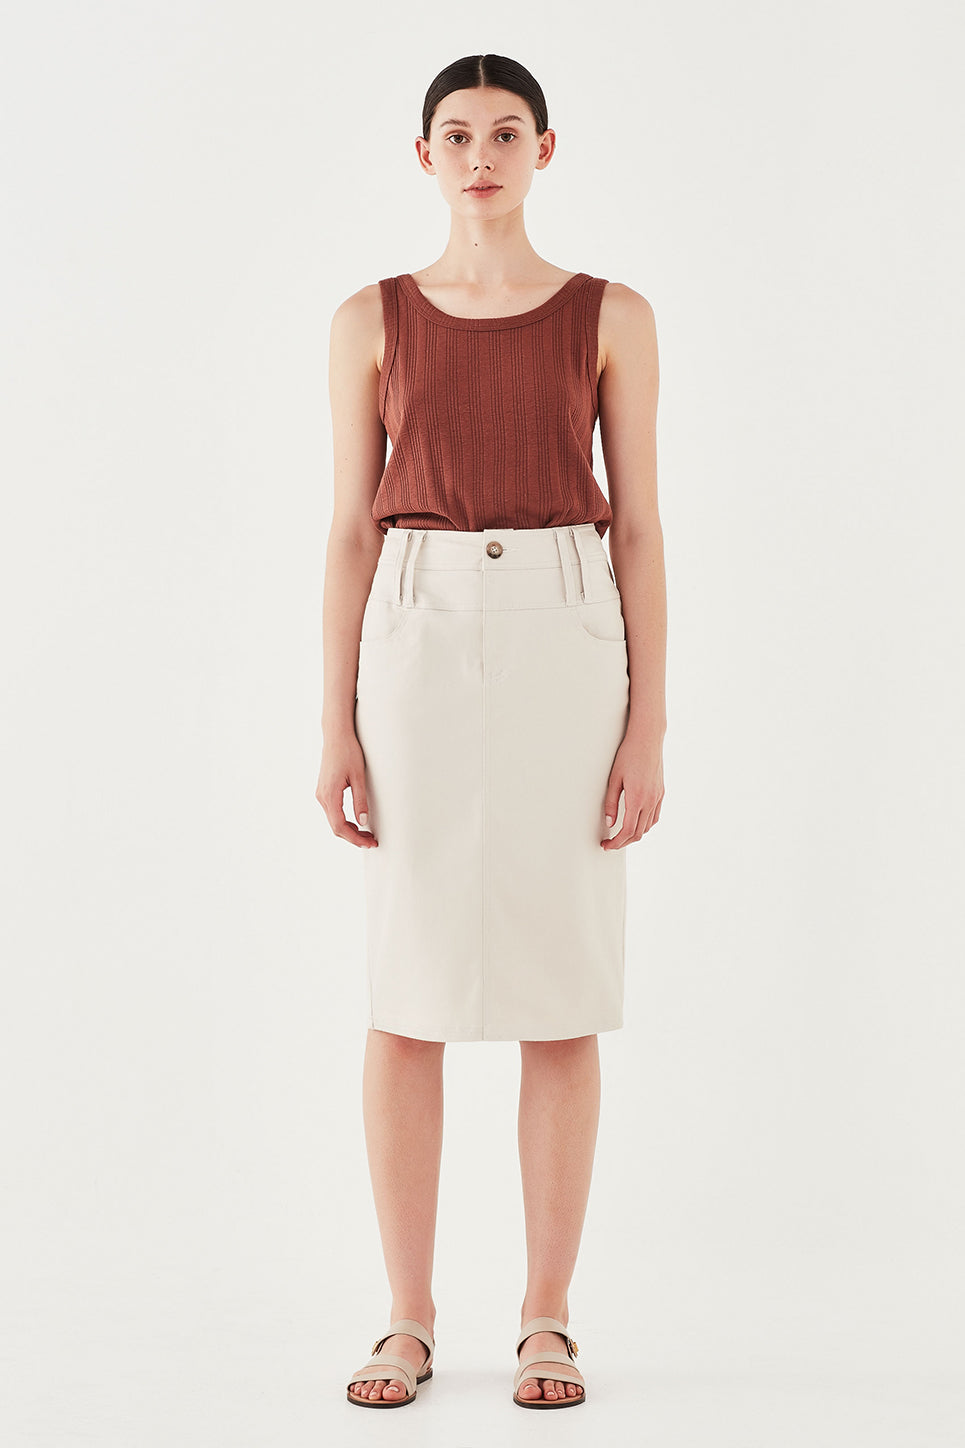 The Ada Skirt in Bone